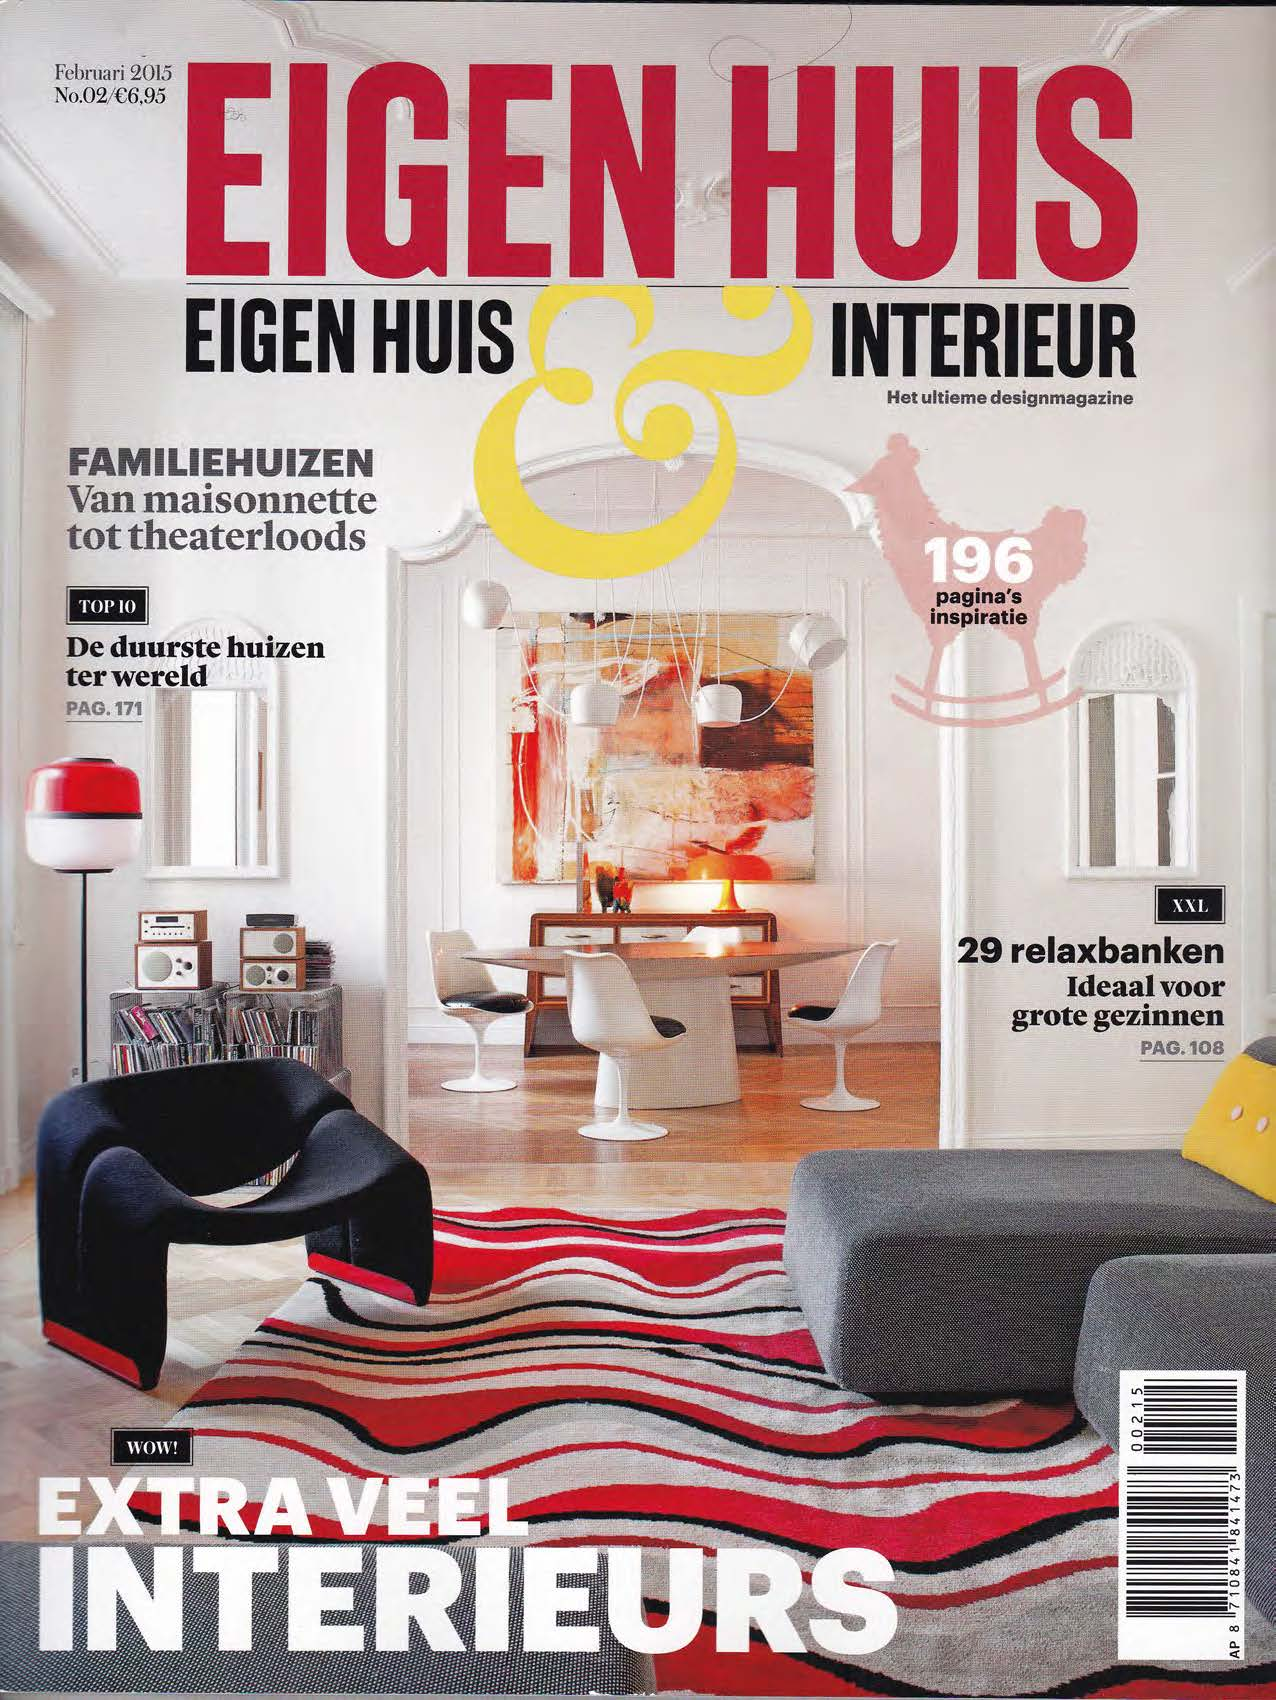 Suite wood eigen huis interieur feb 2015 for Eigenhuis interieur